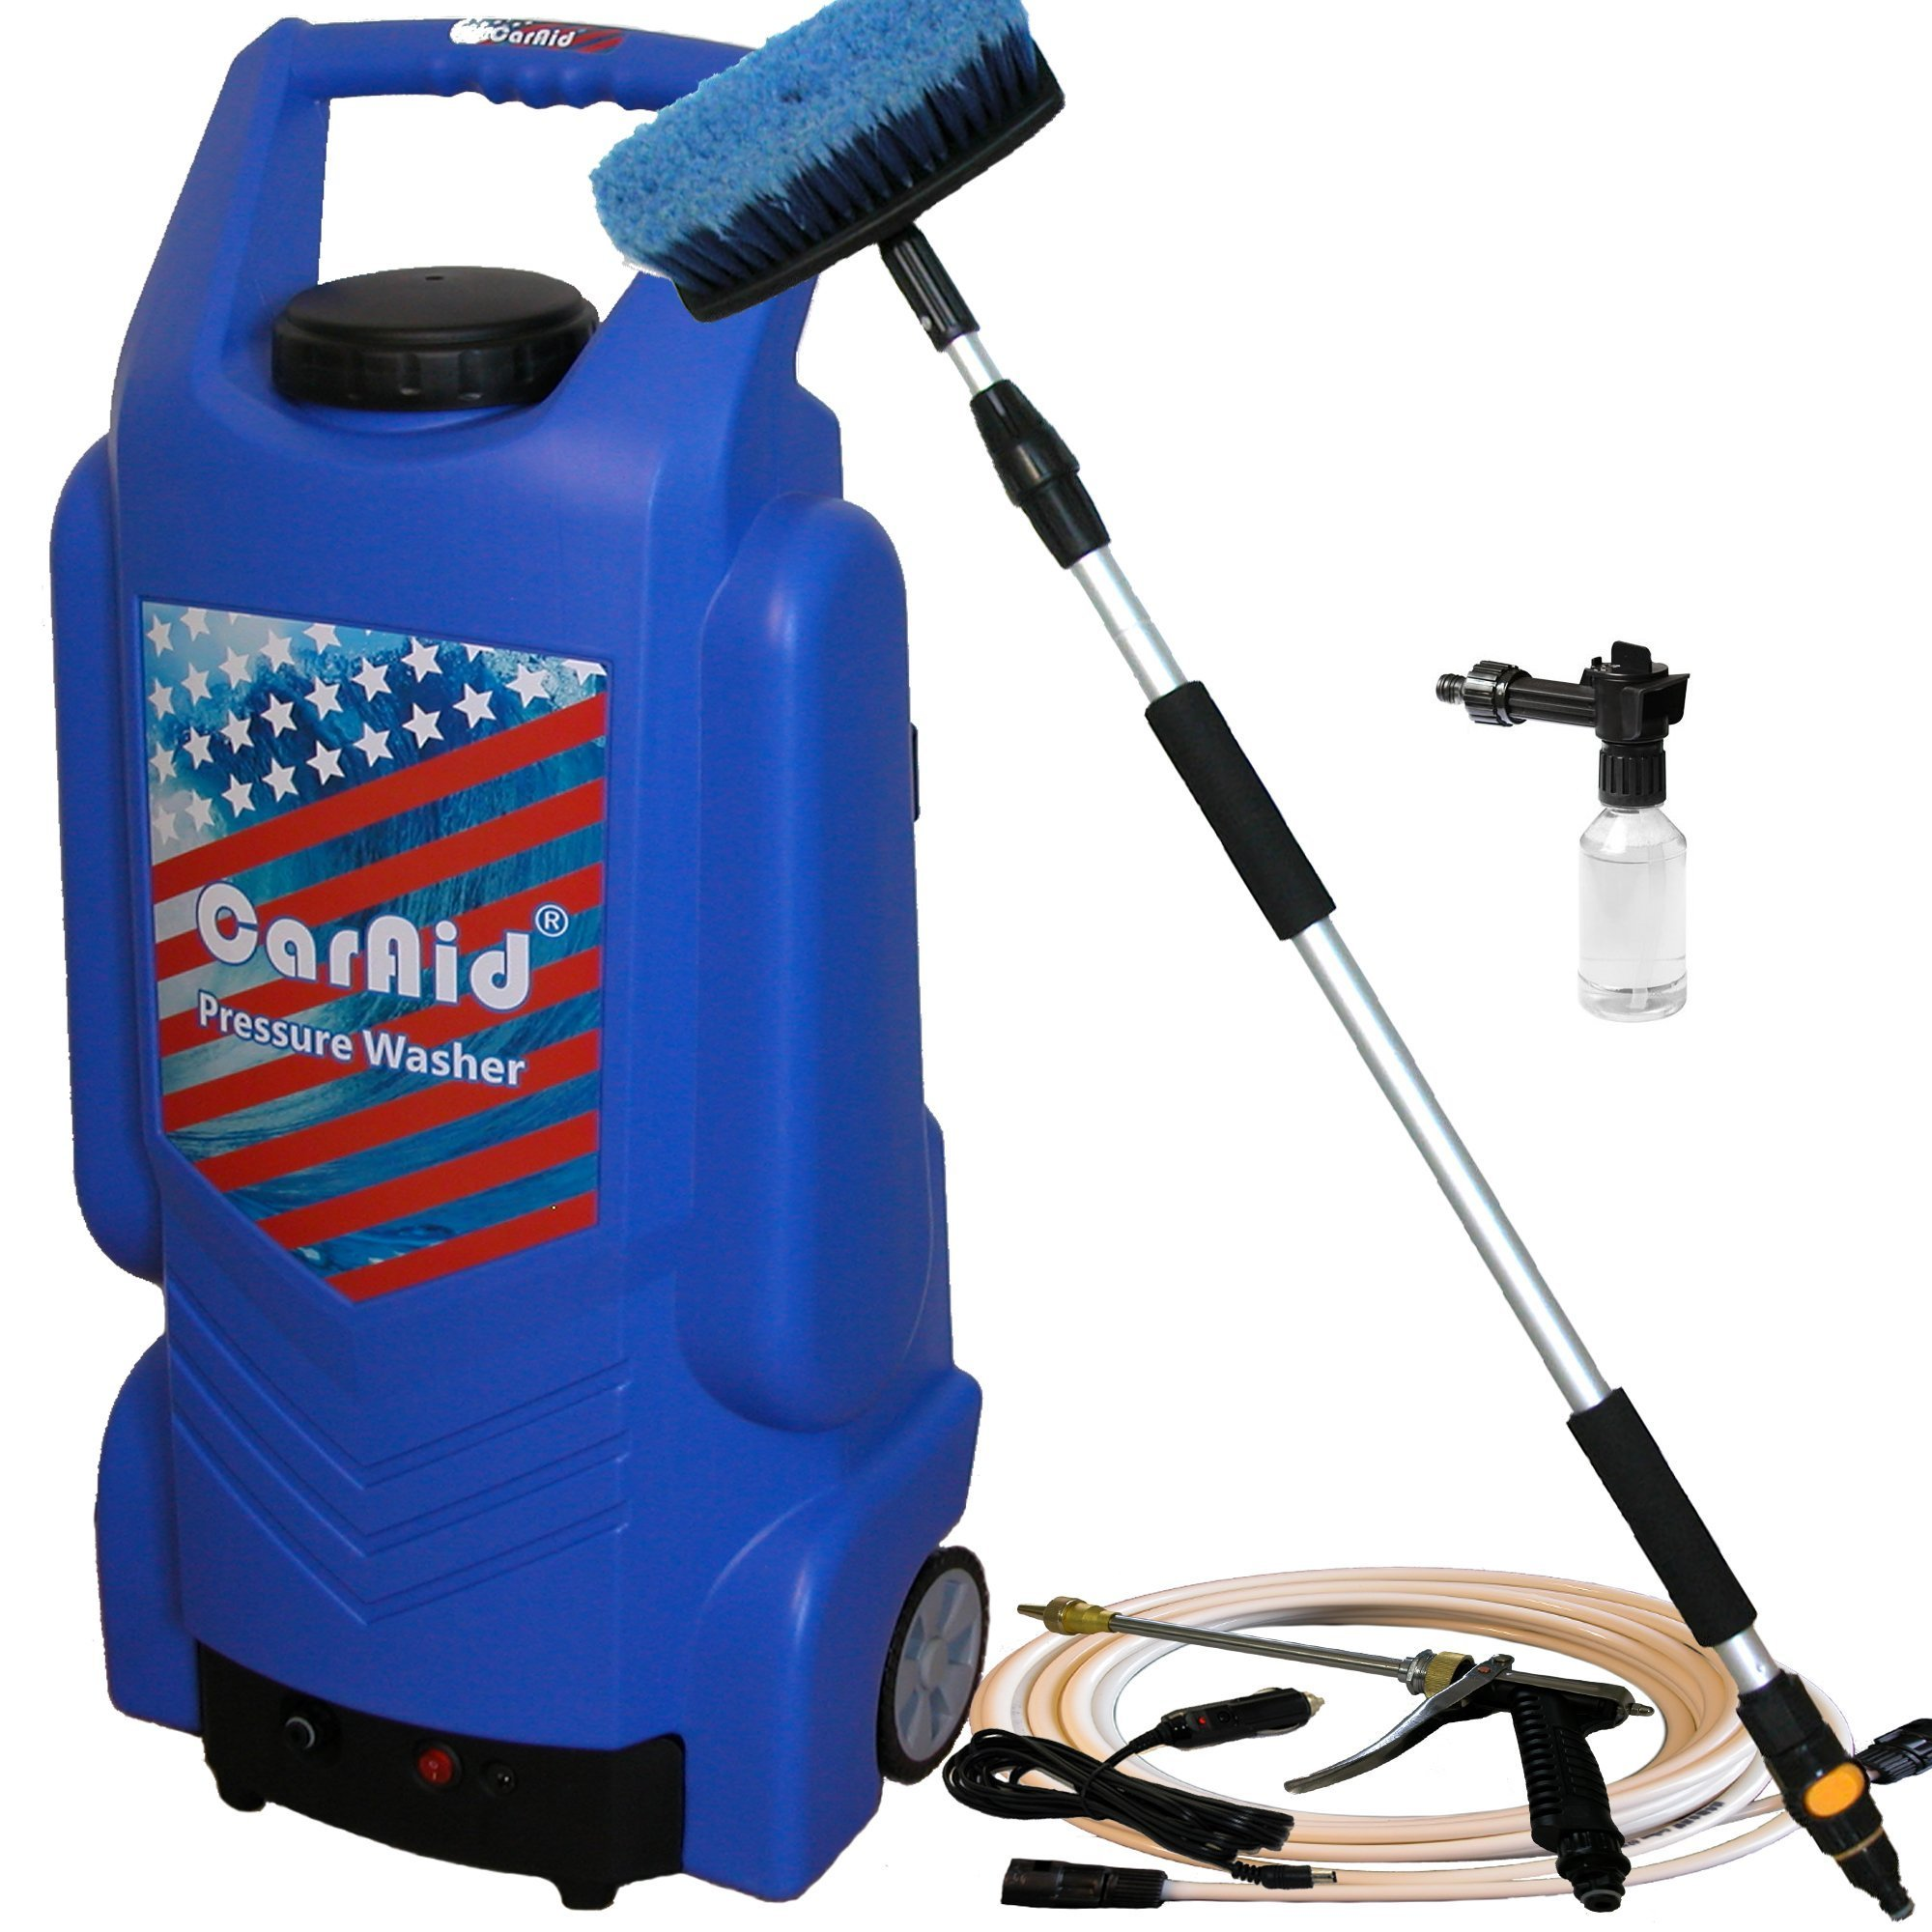 Caraid 9906 Portable Pressure Washer with Water Tank, Large